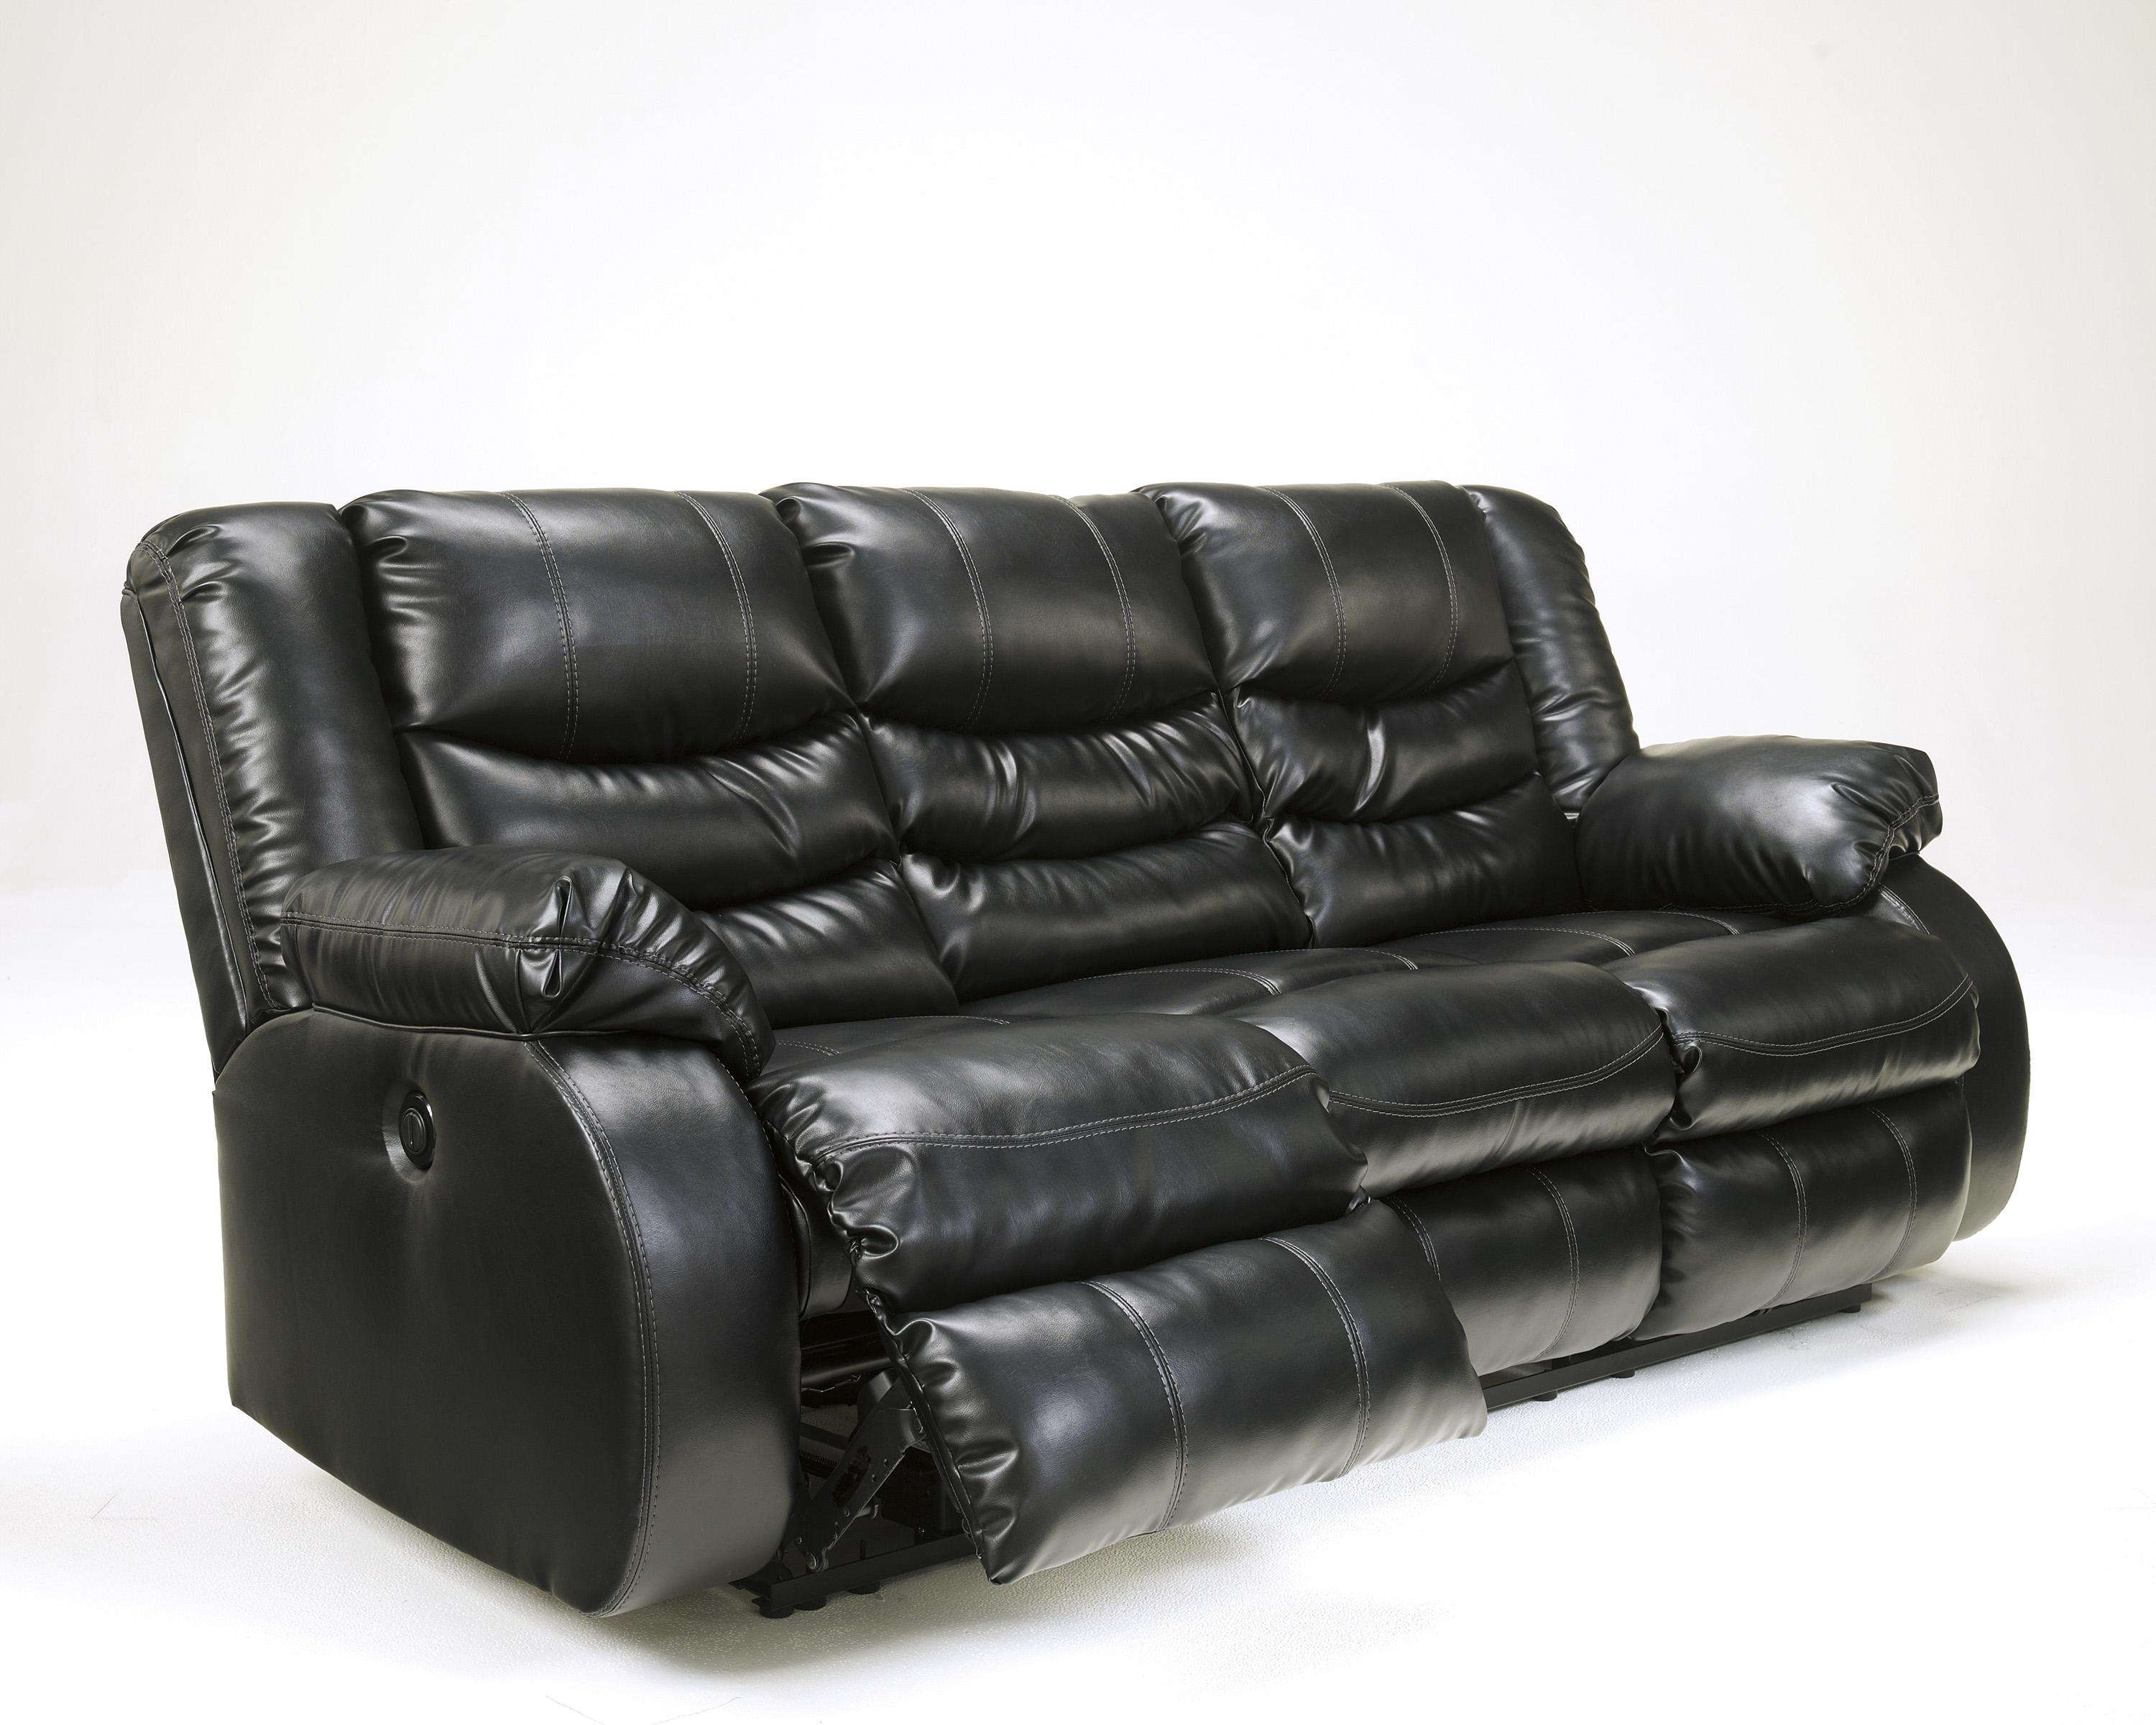 Contemporary Faux Leather Reclining Sofa with Pillow Arms by